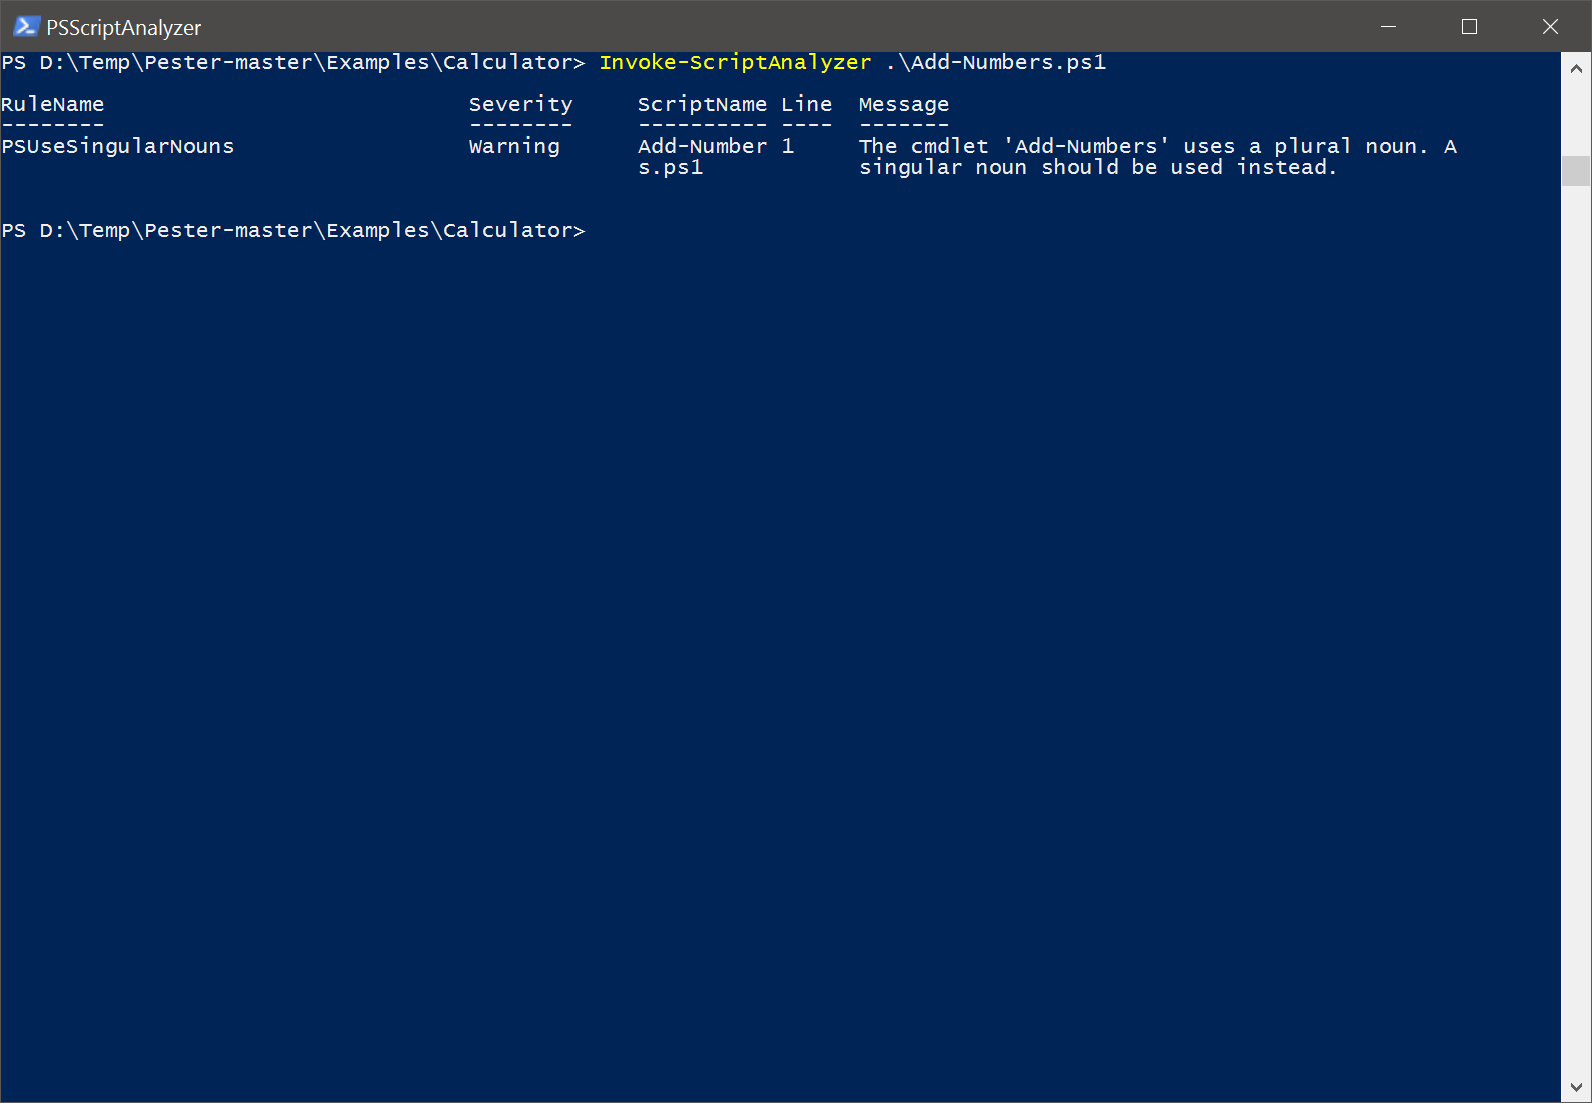 powershell-psscriptanalyzer